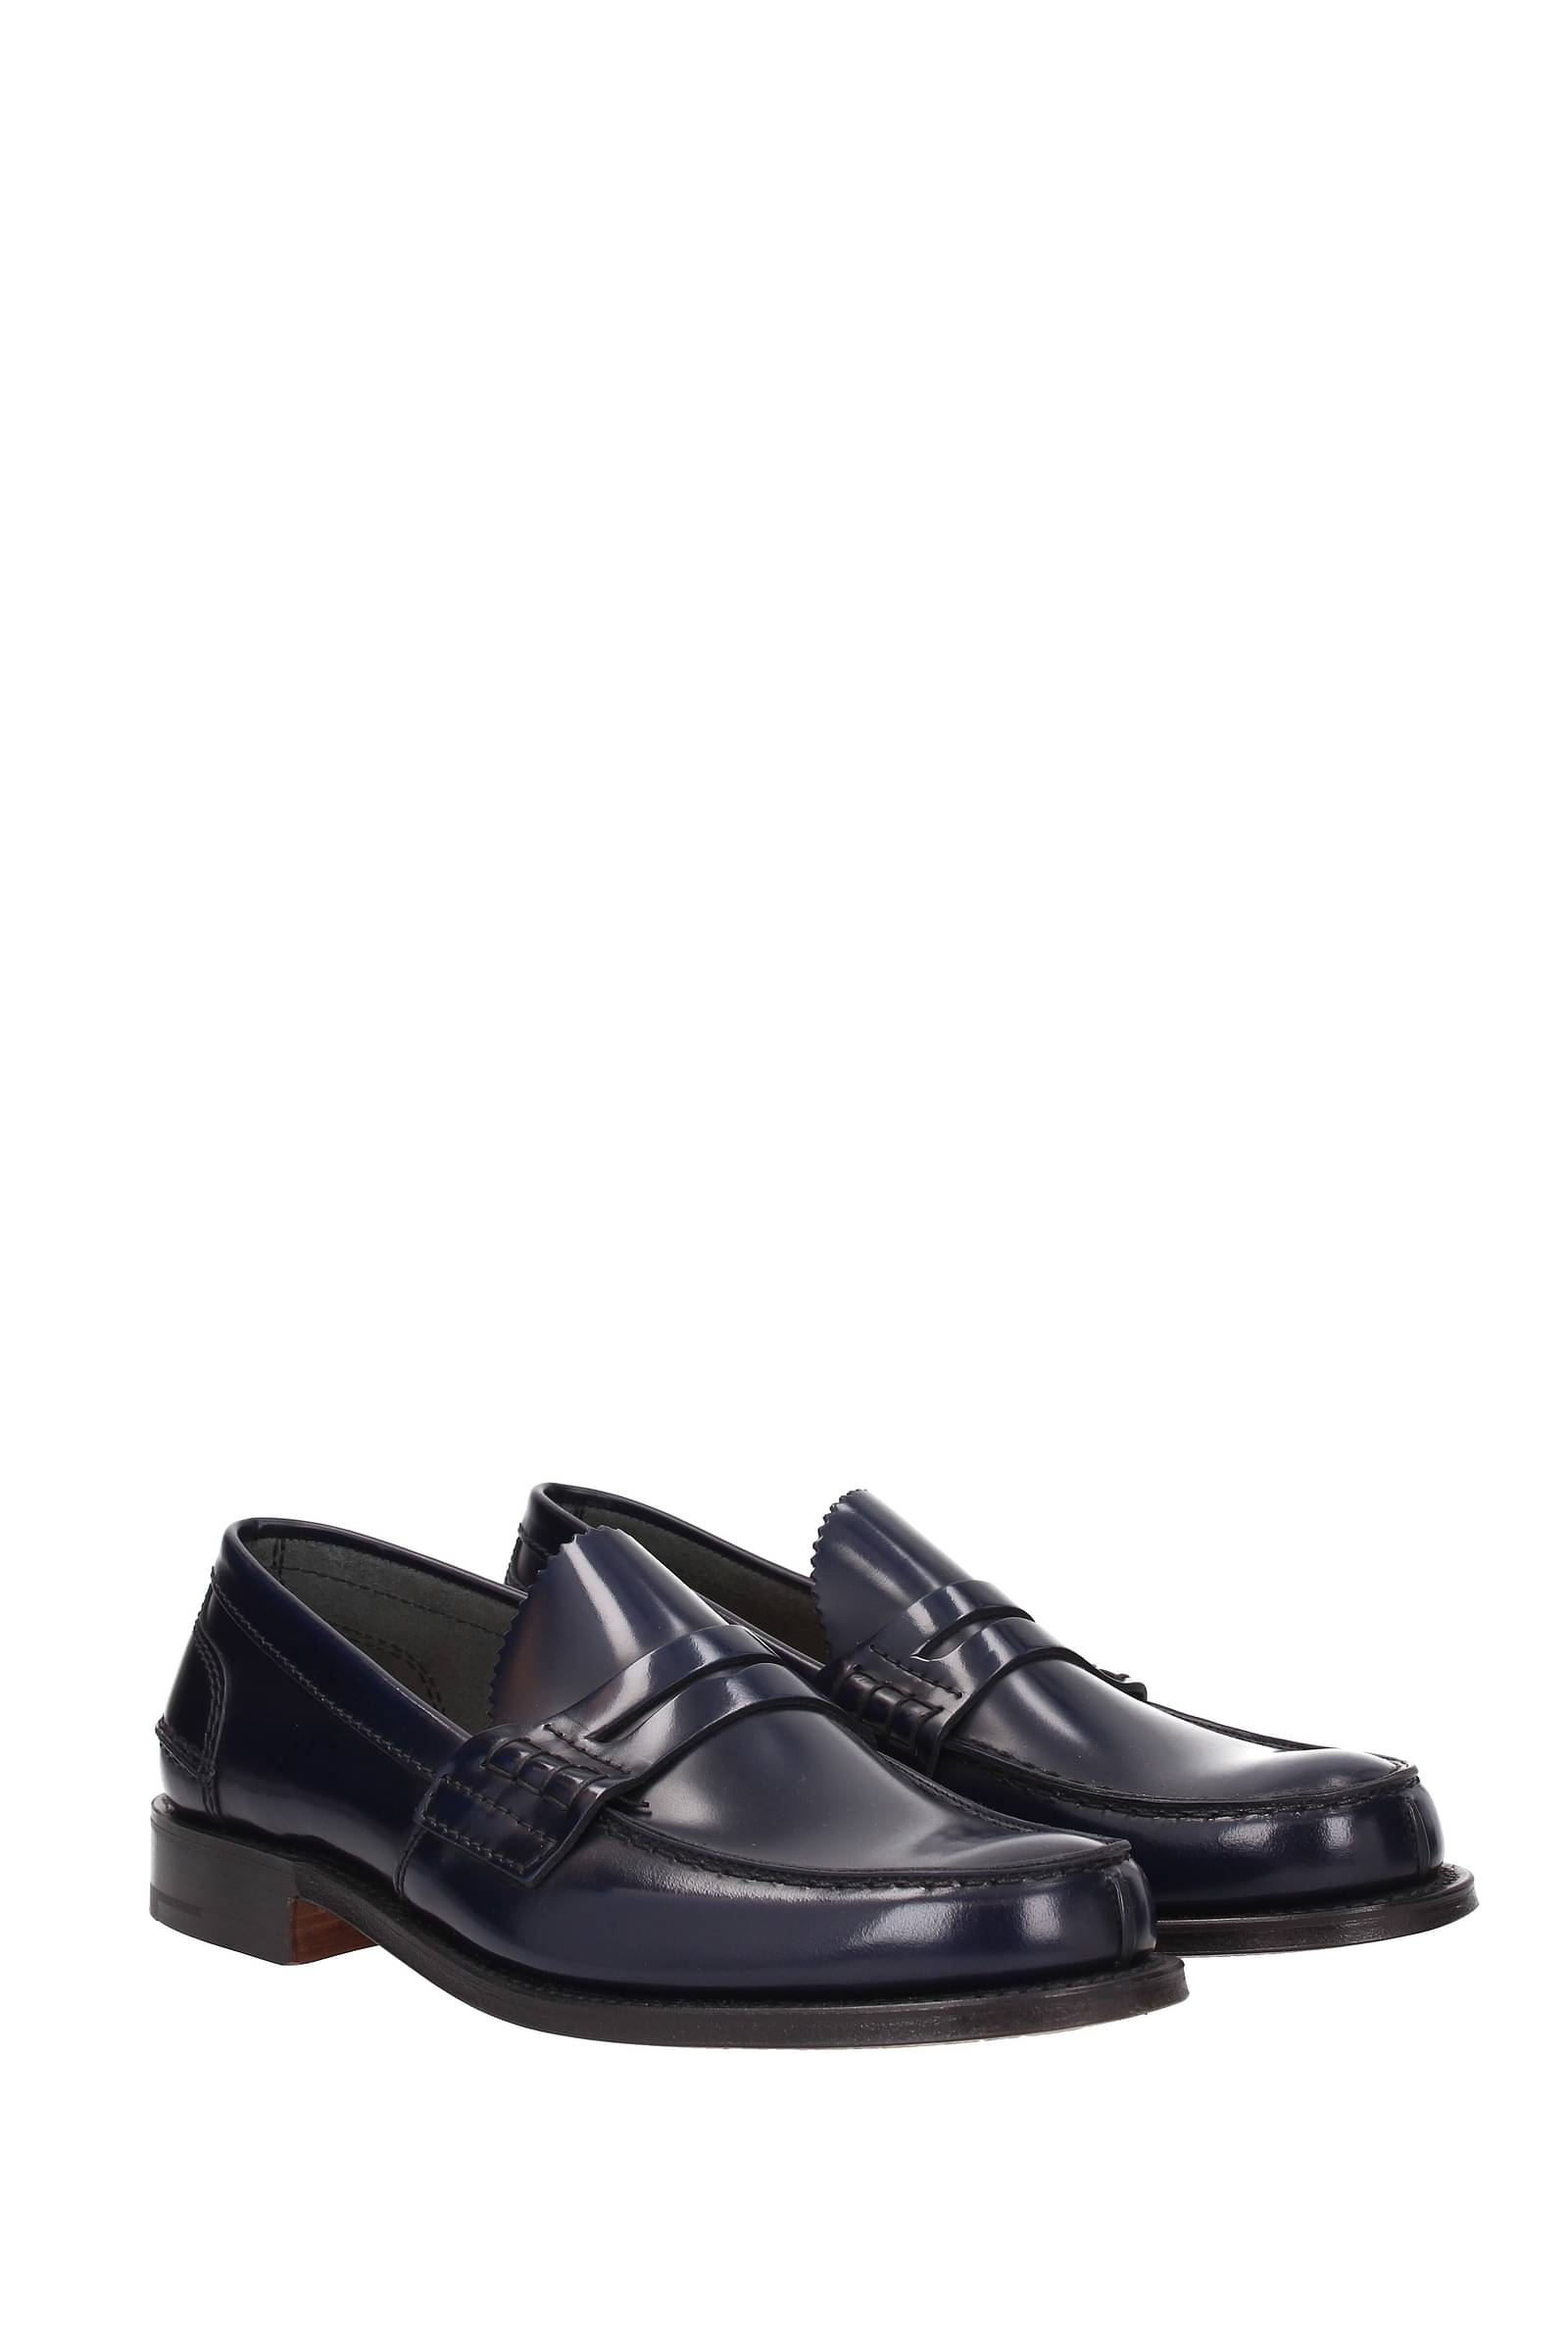 Loafers-Church-039-s-Man-Leather-TUNBRIDGE thumbnail 2